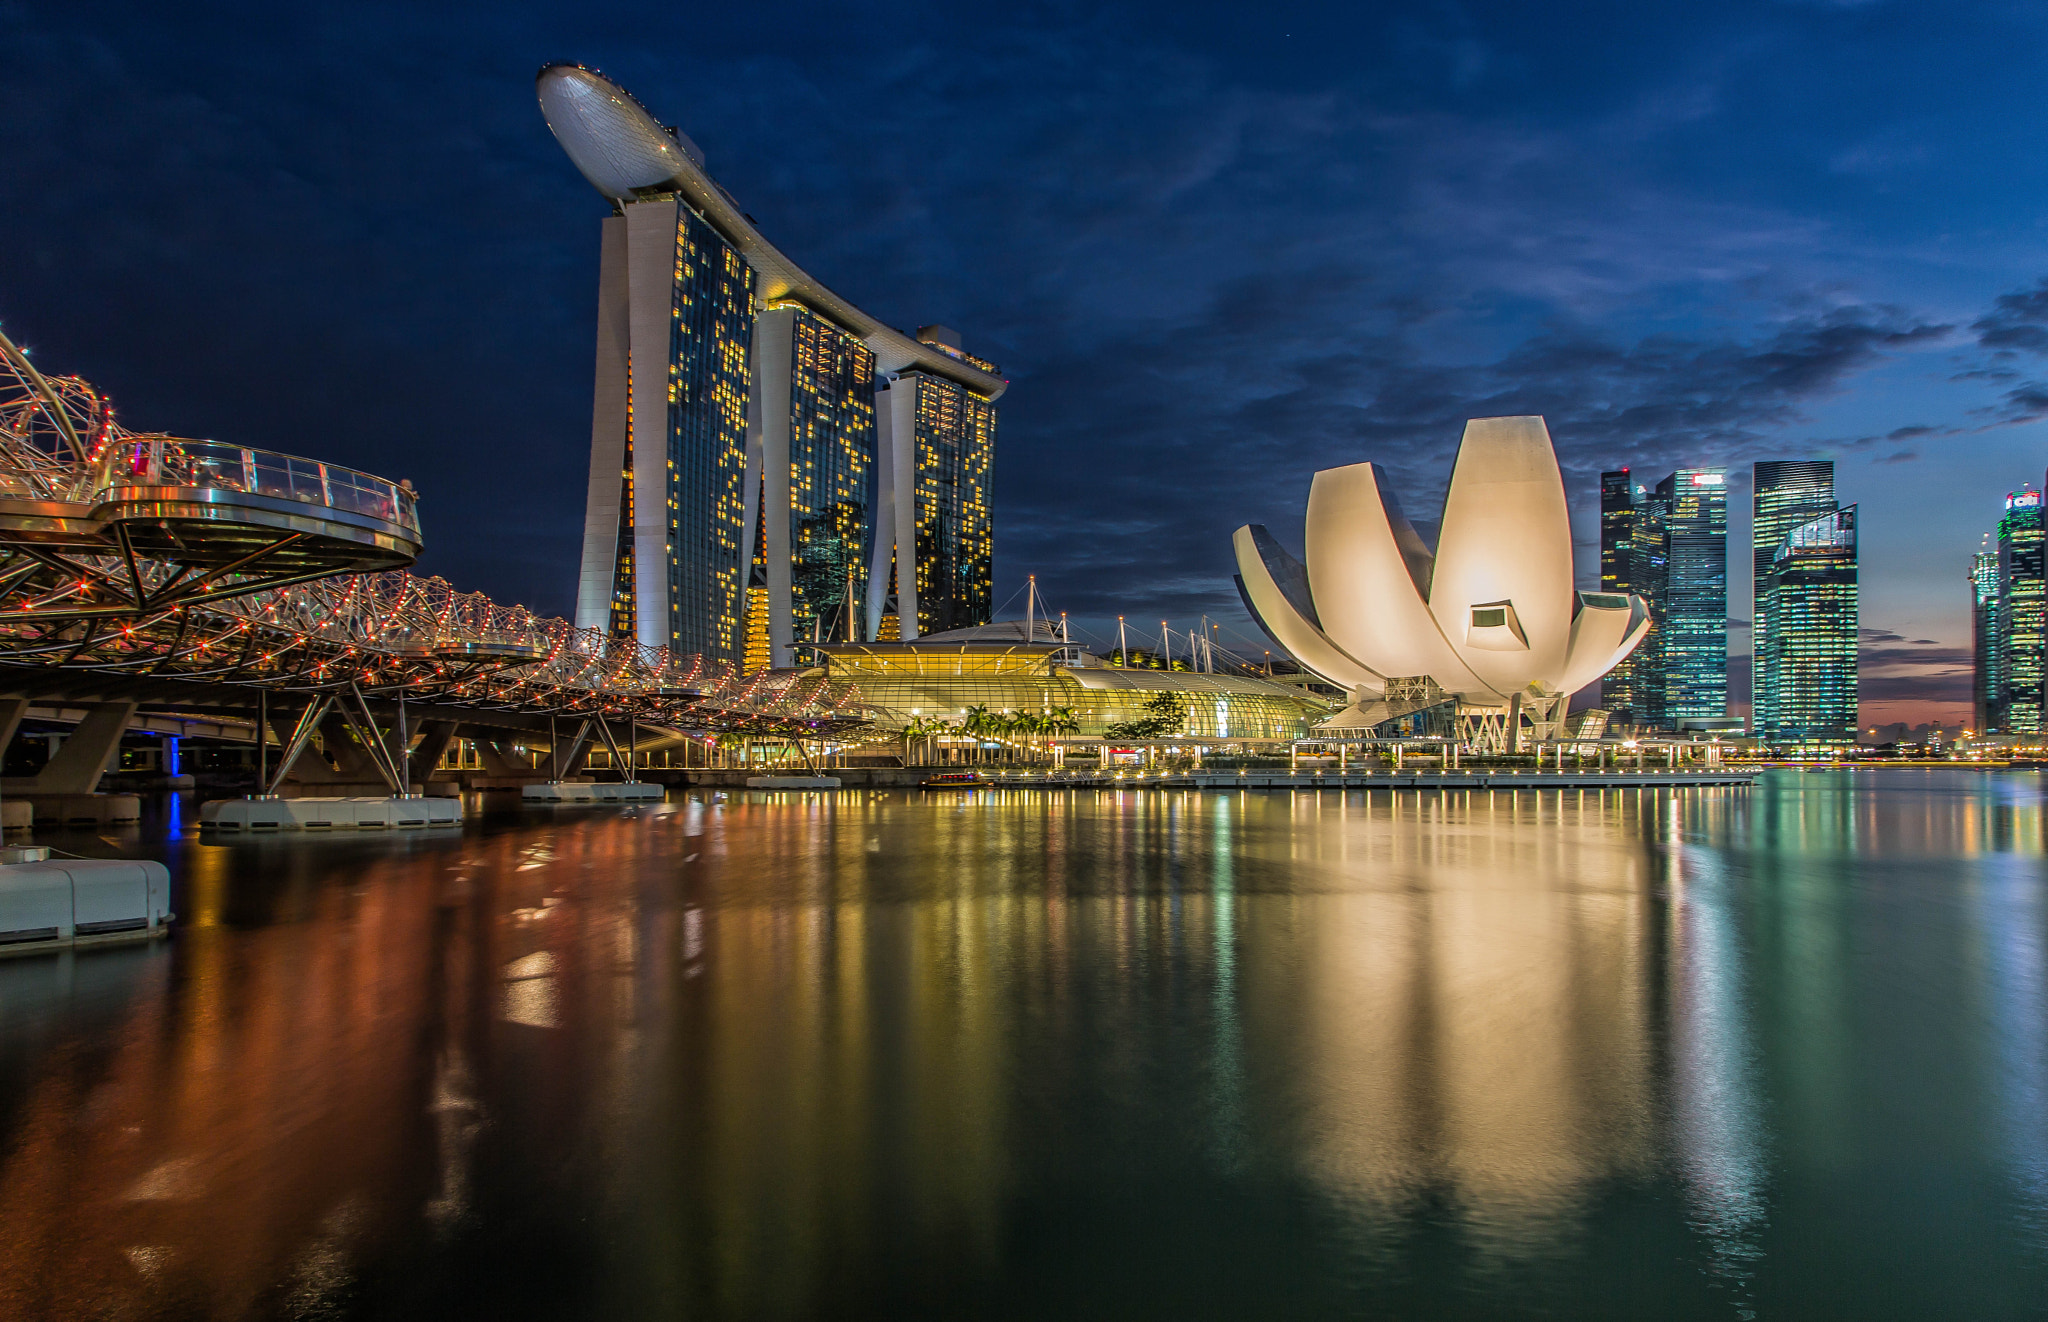 Photograph Singapore - Marina Bay Sands and Helix Bridge by Peter Craig on 500px